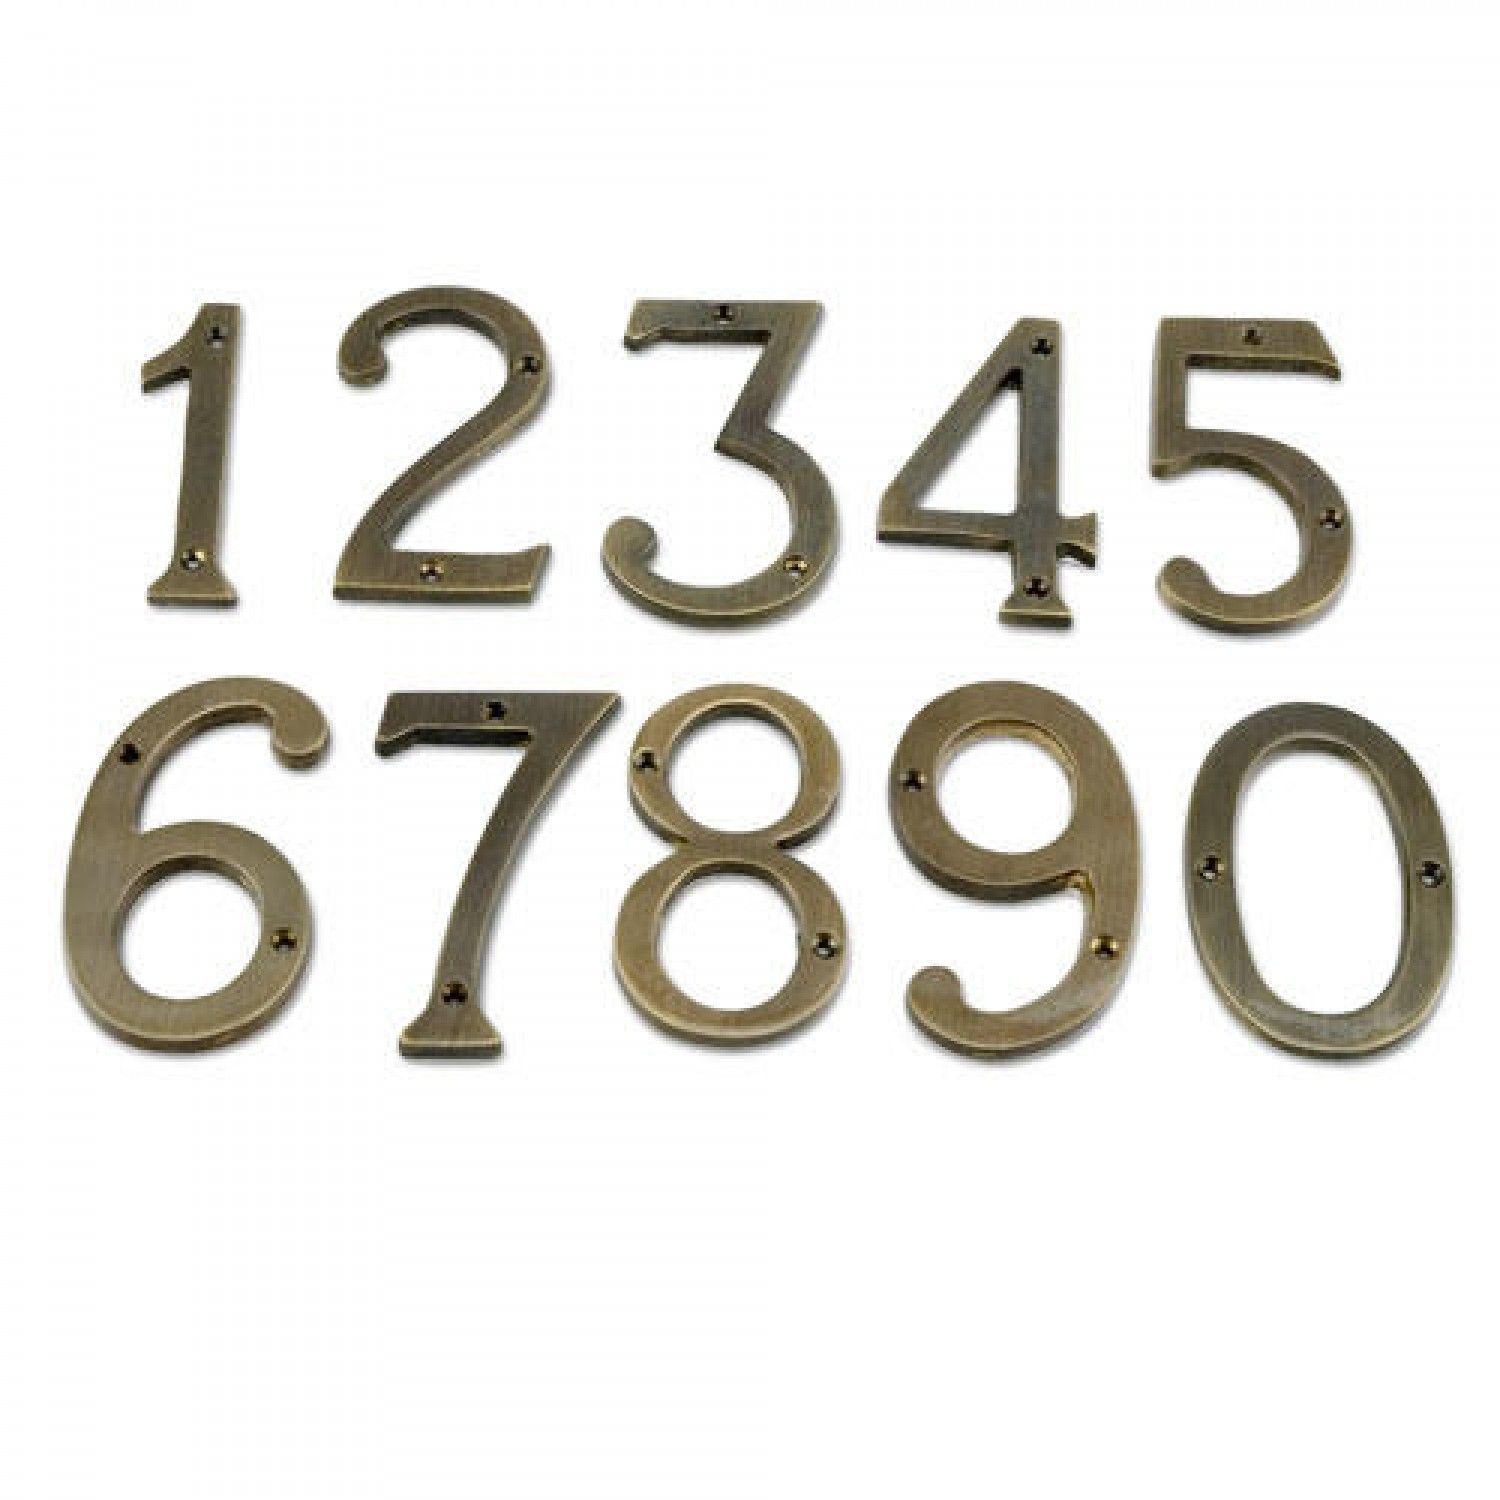 Antique brass traditional house numbers